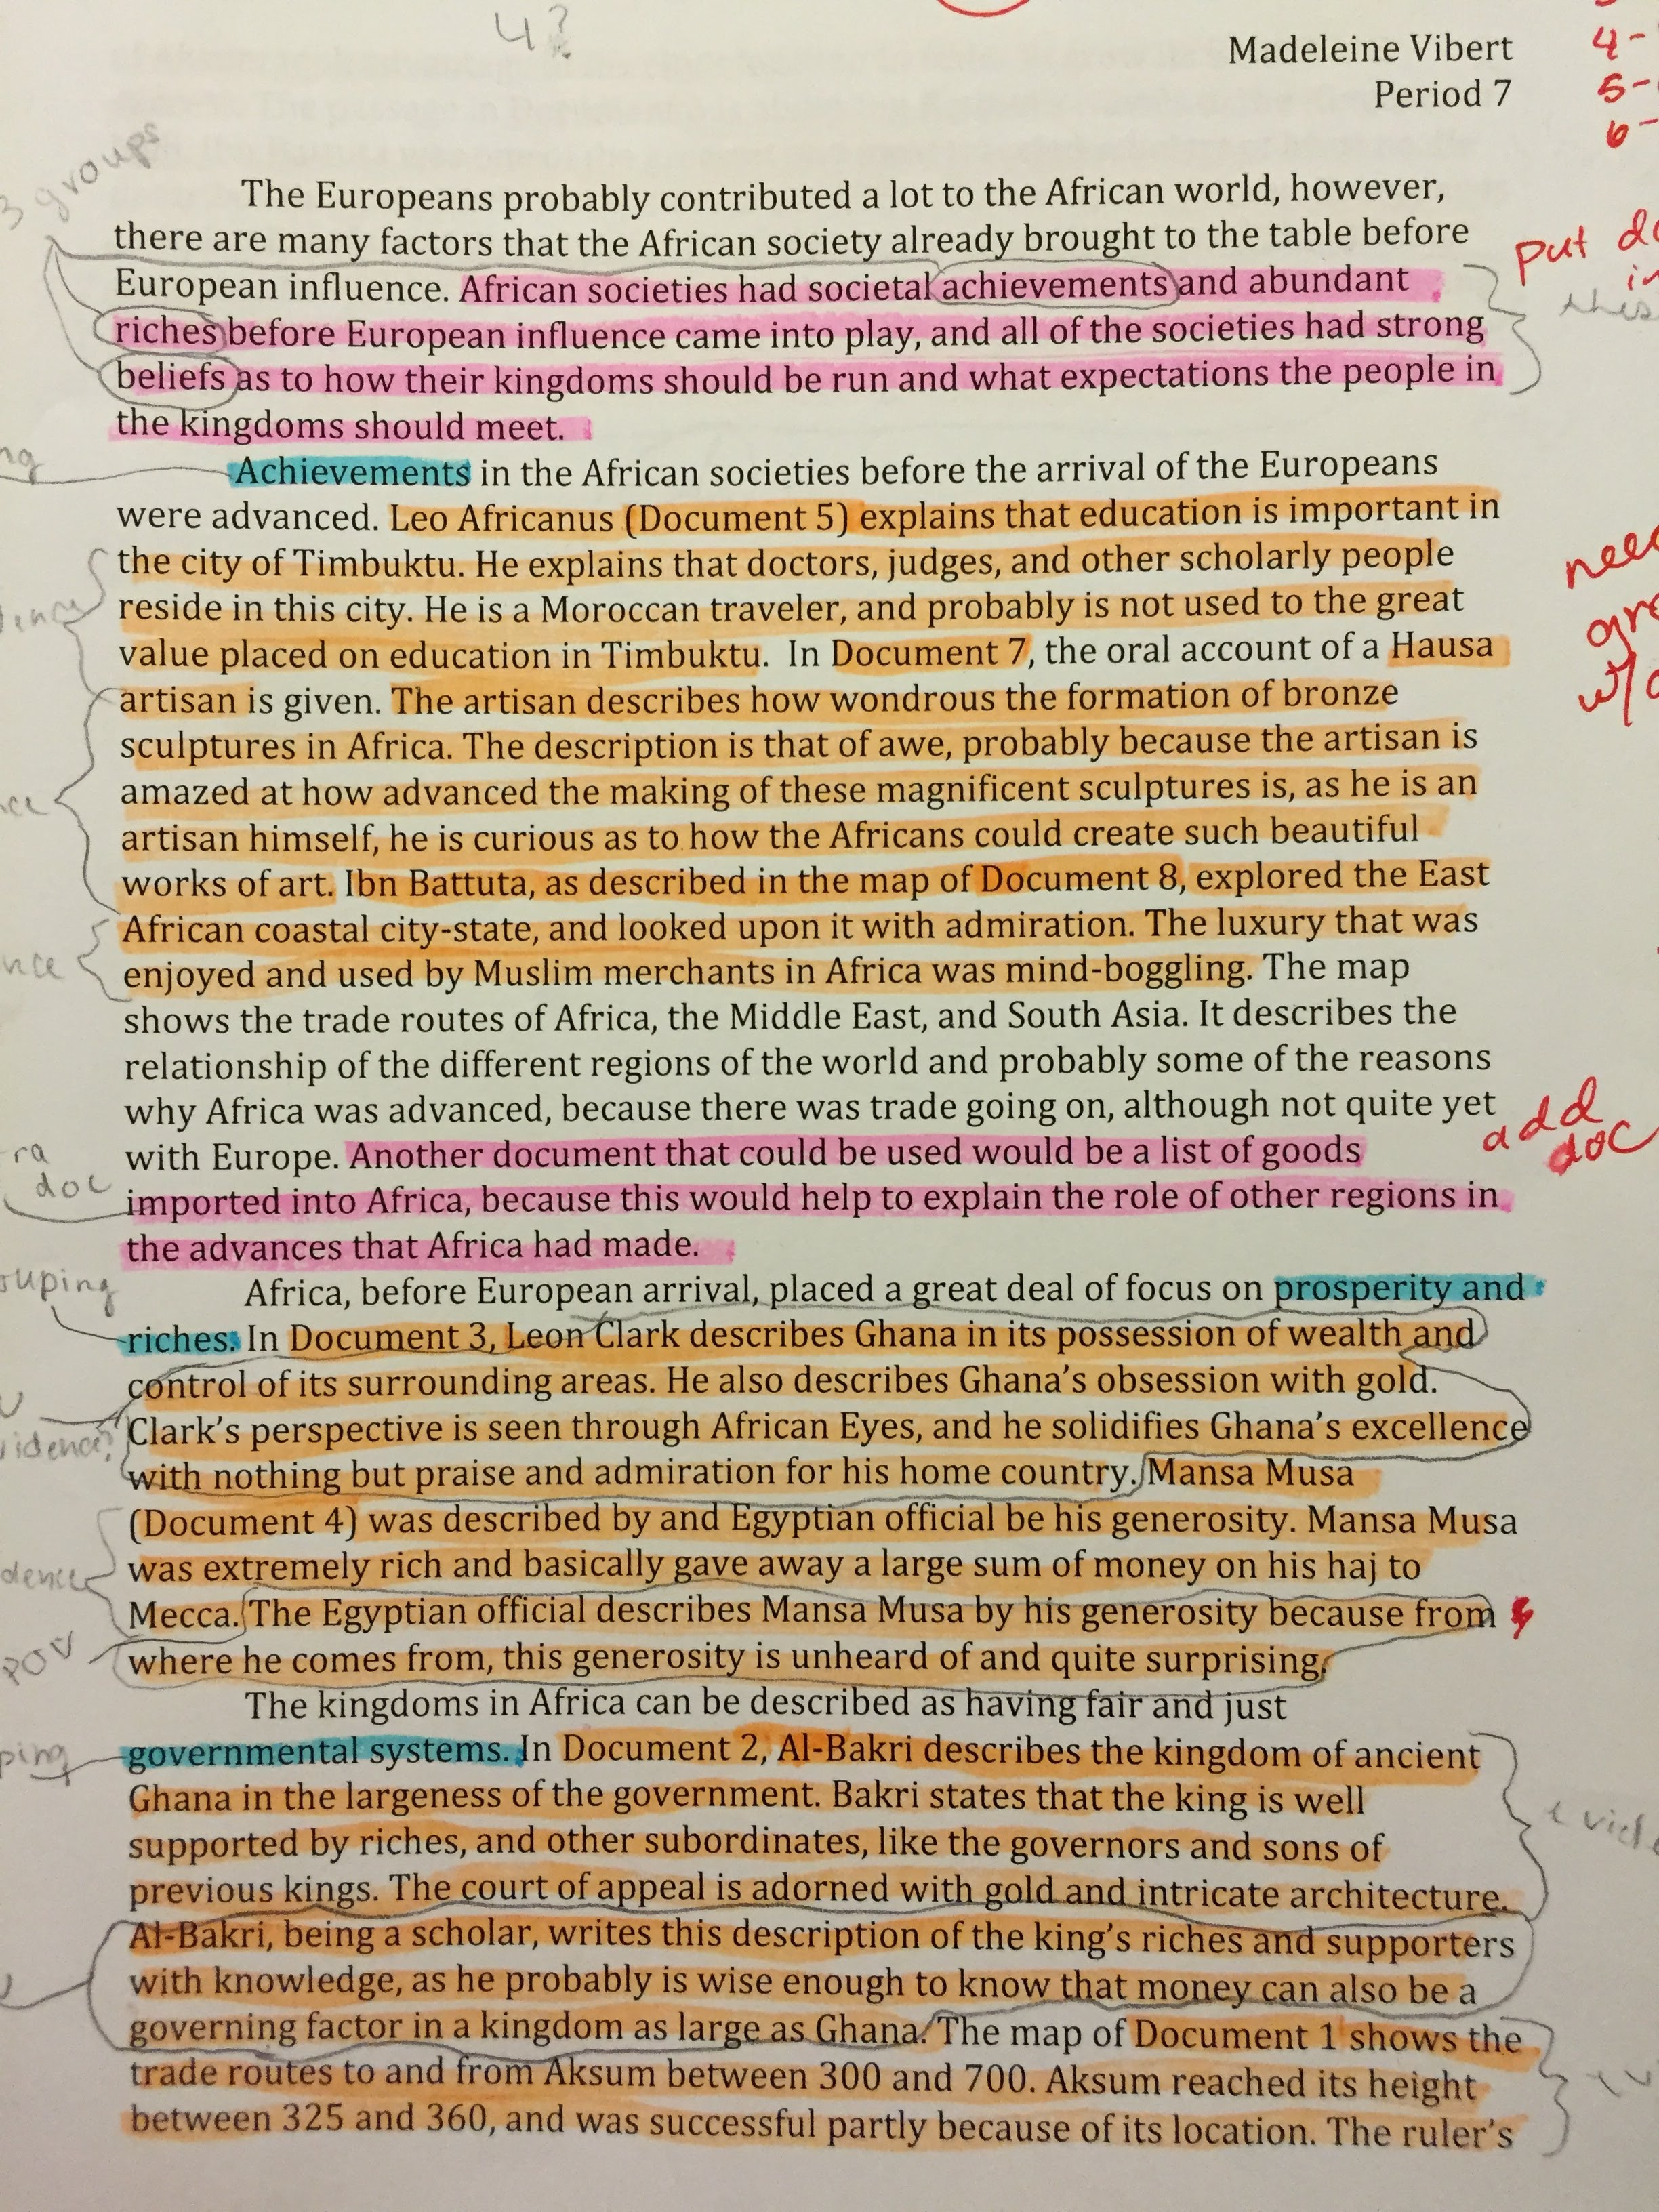 compare contrast history essay Organizing the compare-contrast essay share  the compare/contrast essay is an excellent opportunity to  how authors of fiction use or alter history.